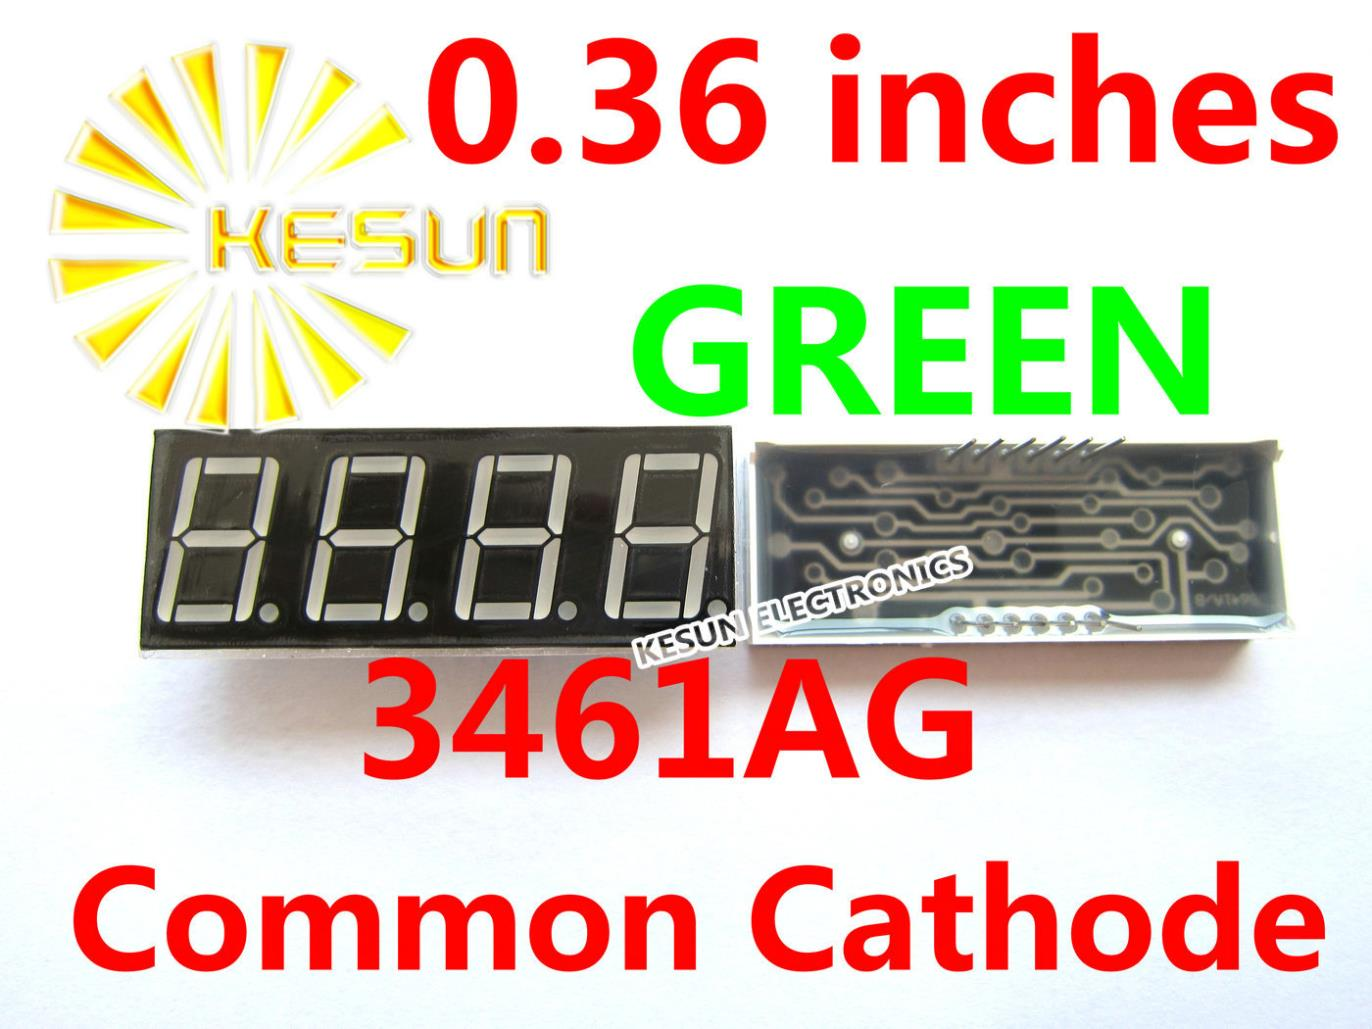 50PCS X 0.36 Inches Green Red Blue Jade Green Common Cathode/Anode 4 Digital Tube  3461AG 3461AGG 3461AB LED Display Module